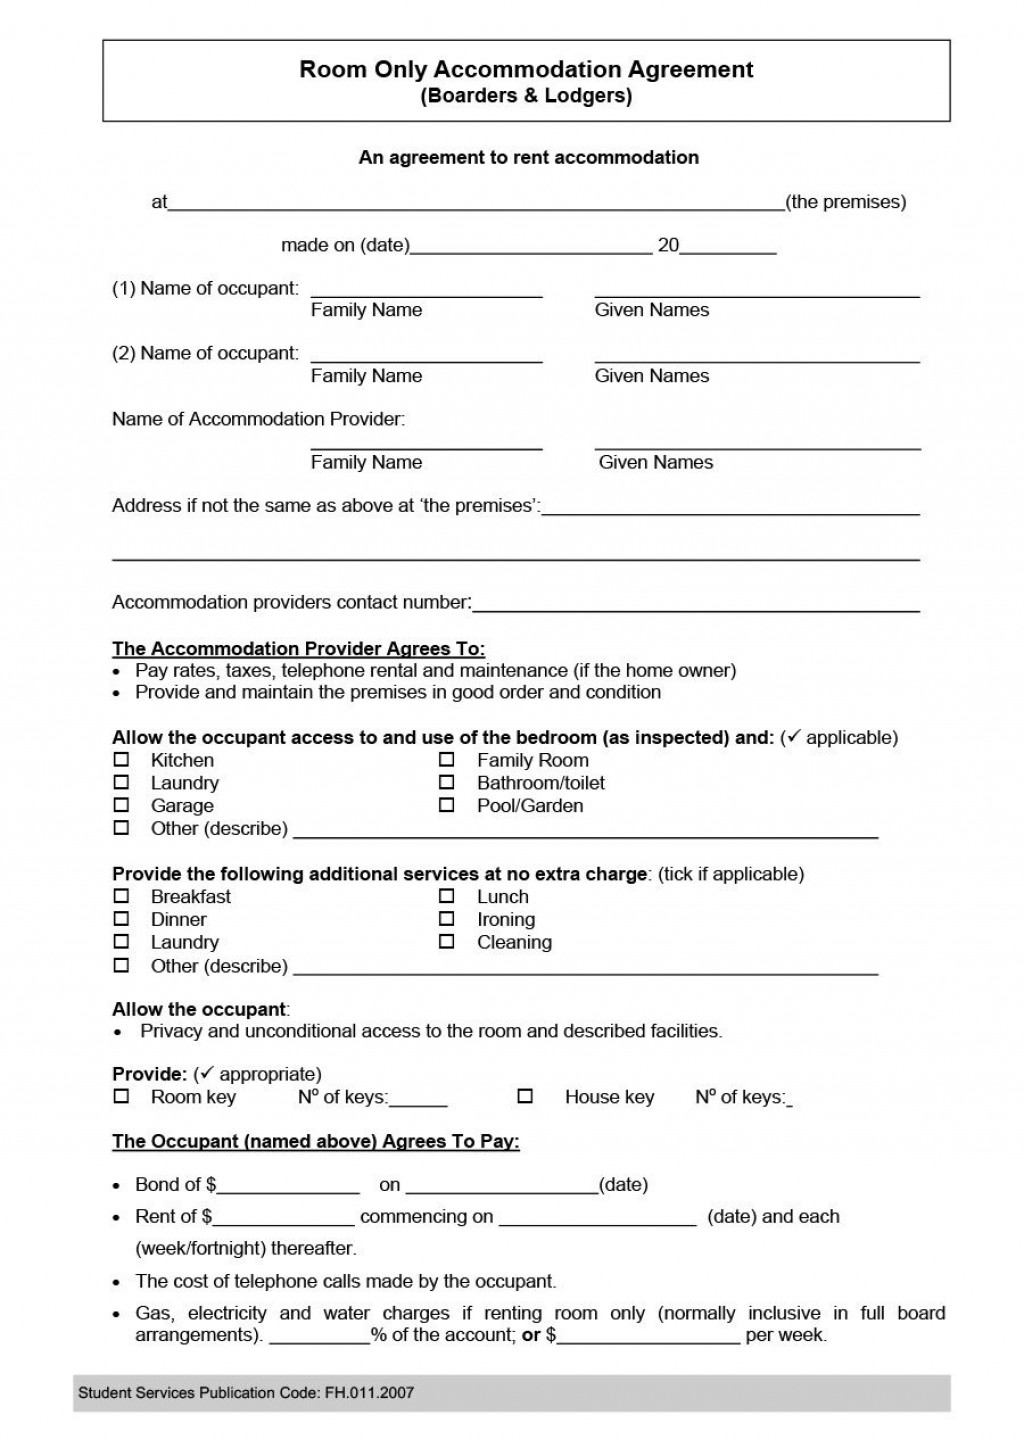 005 Incredible Generic Room Rental Agreement Free Idea  PrintableLarge